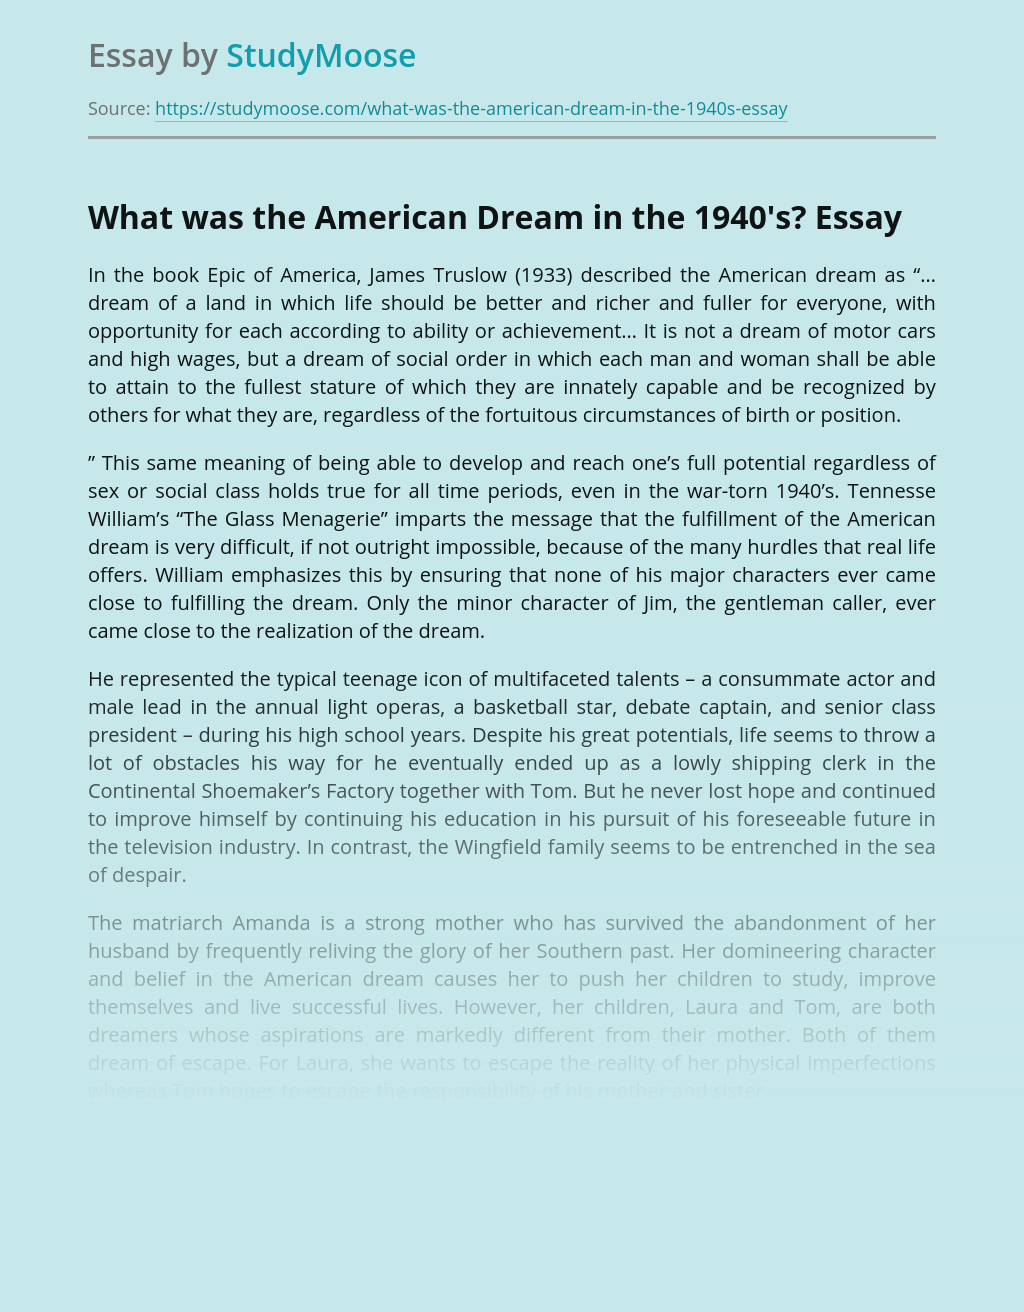 What was the American Dream in the 1940's?